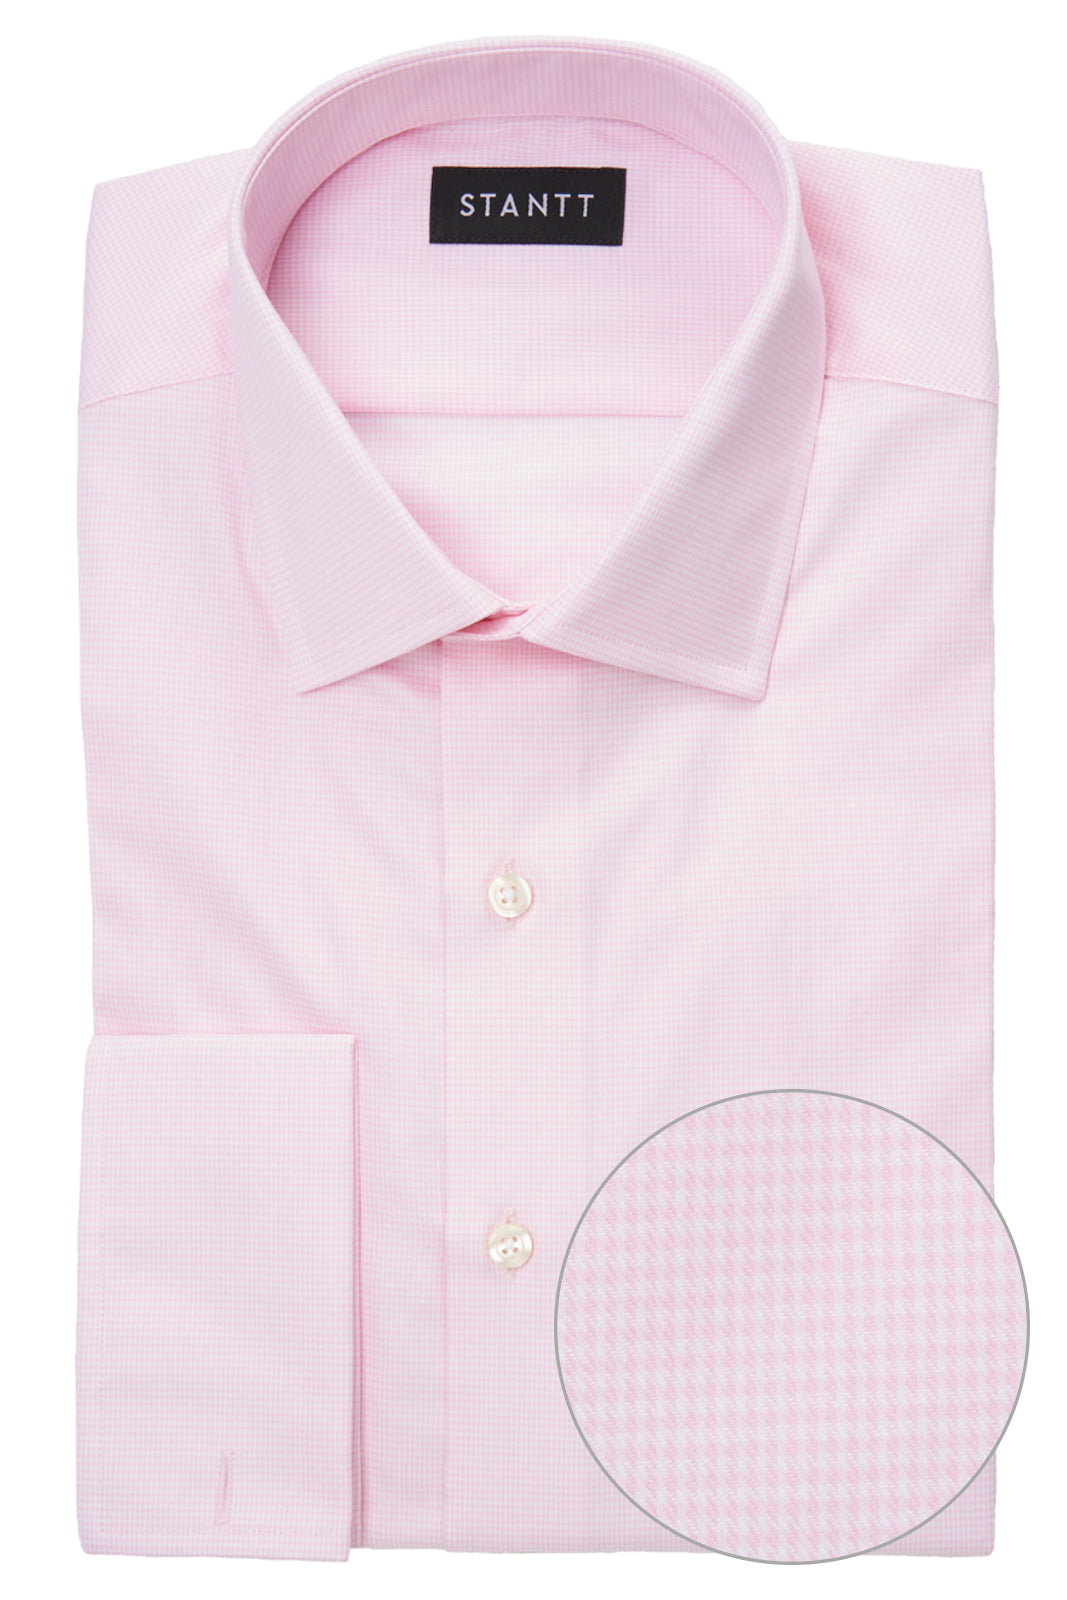 Pink Houndstooth: Modified-Spread Collar, Barrel Cuff